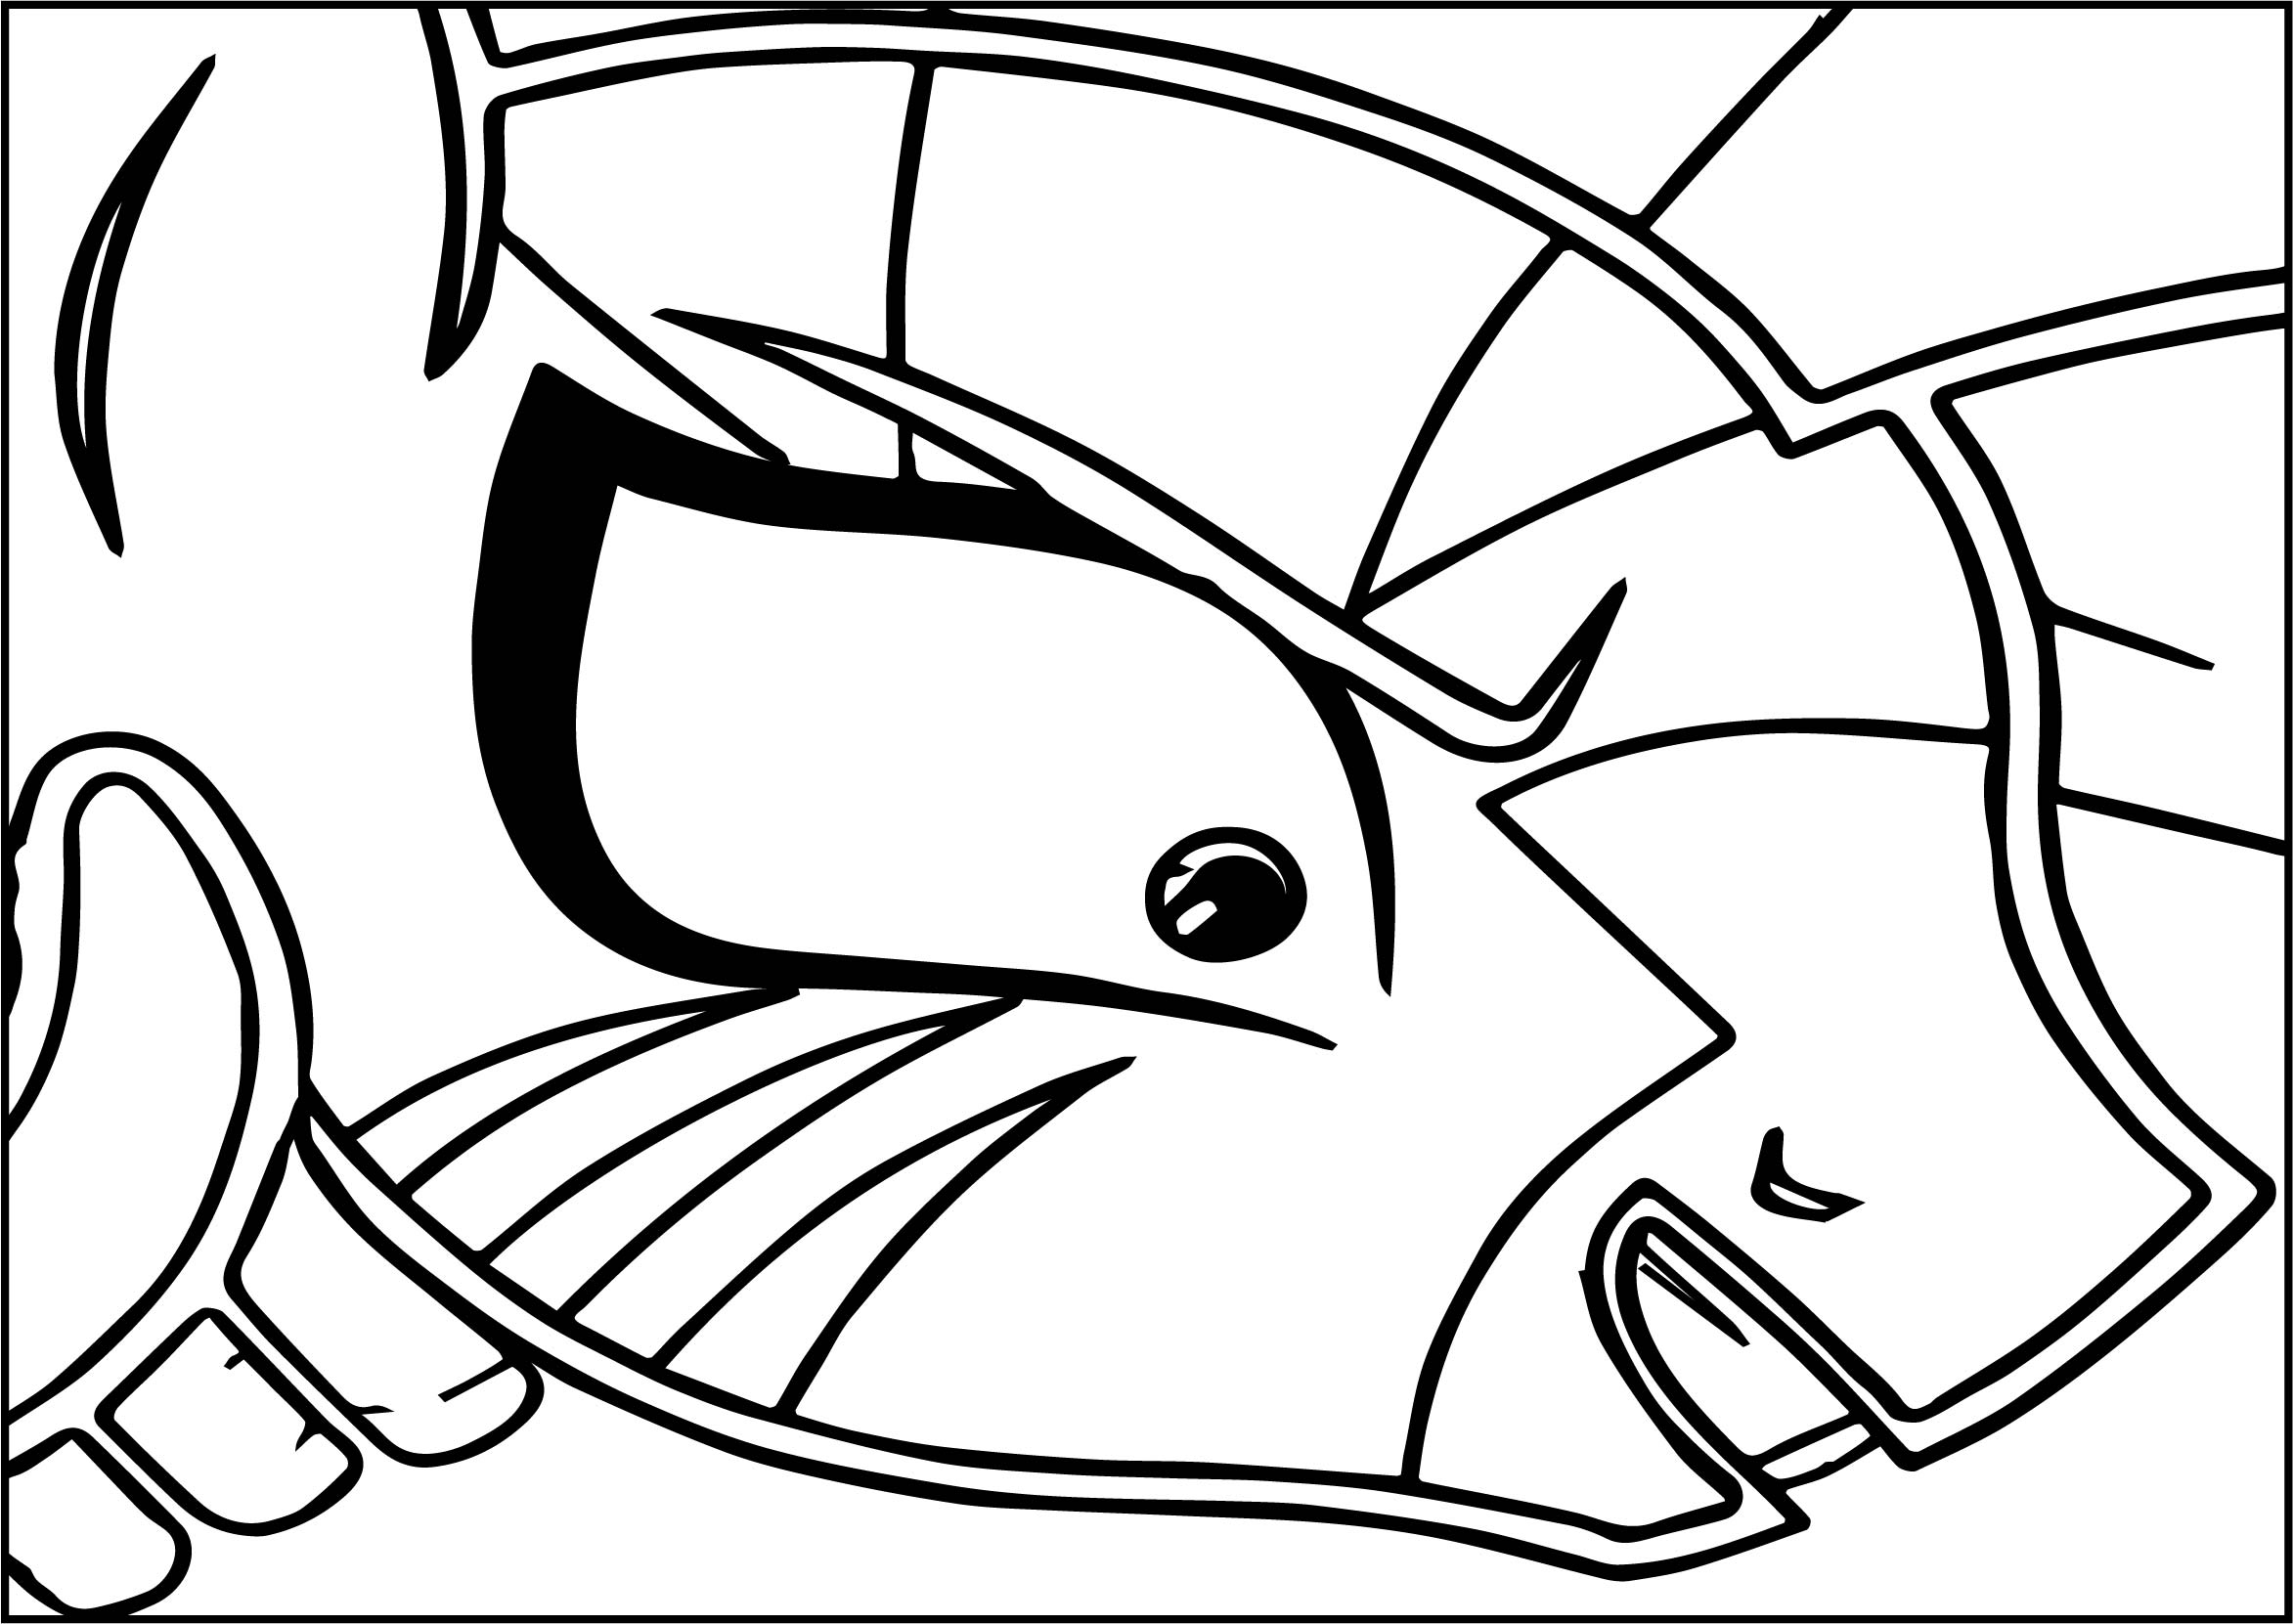 Crazy zecora coloring page for Crazy coloring pages